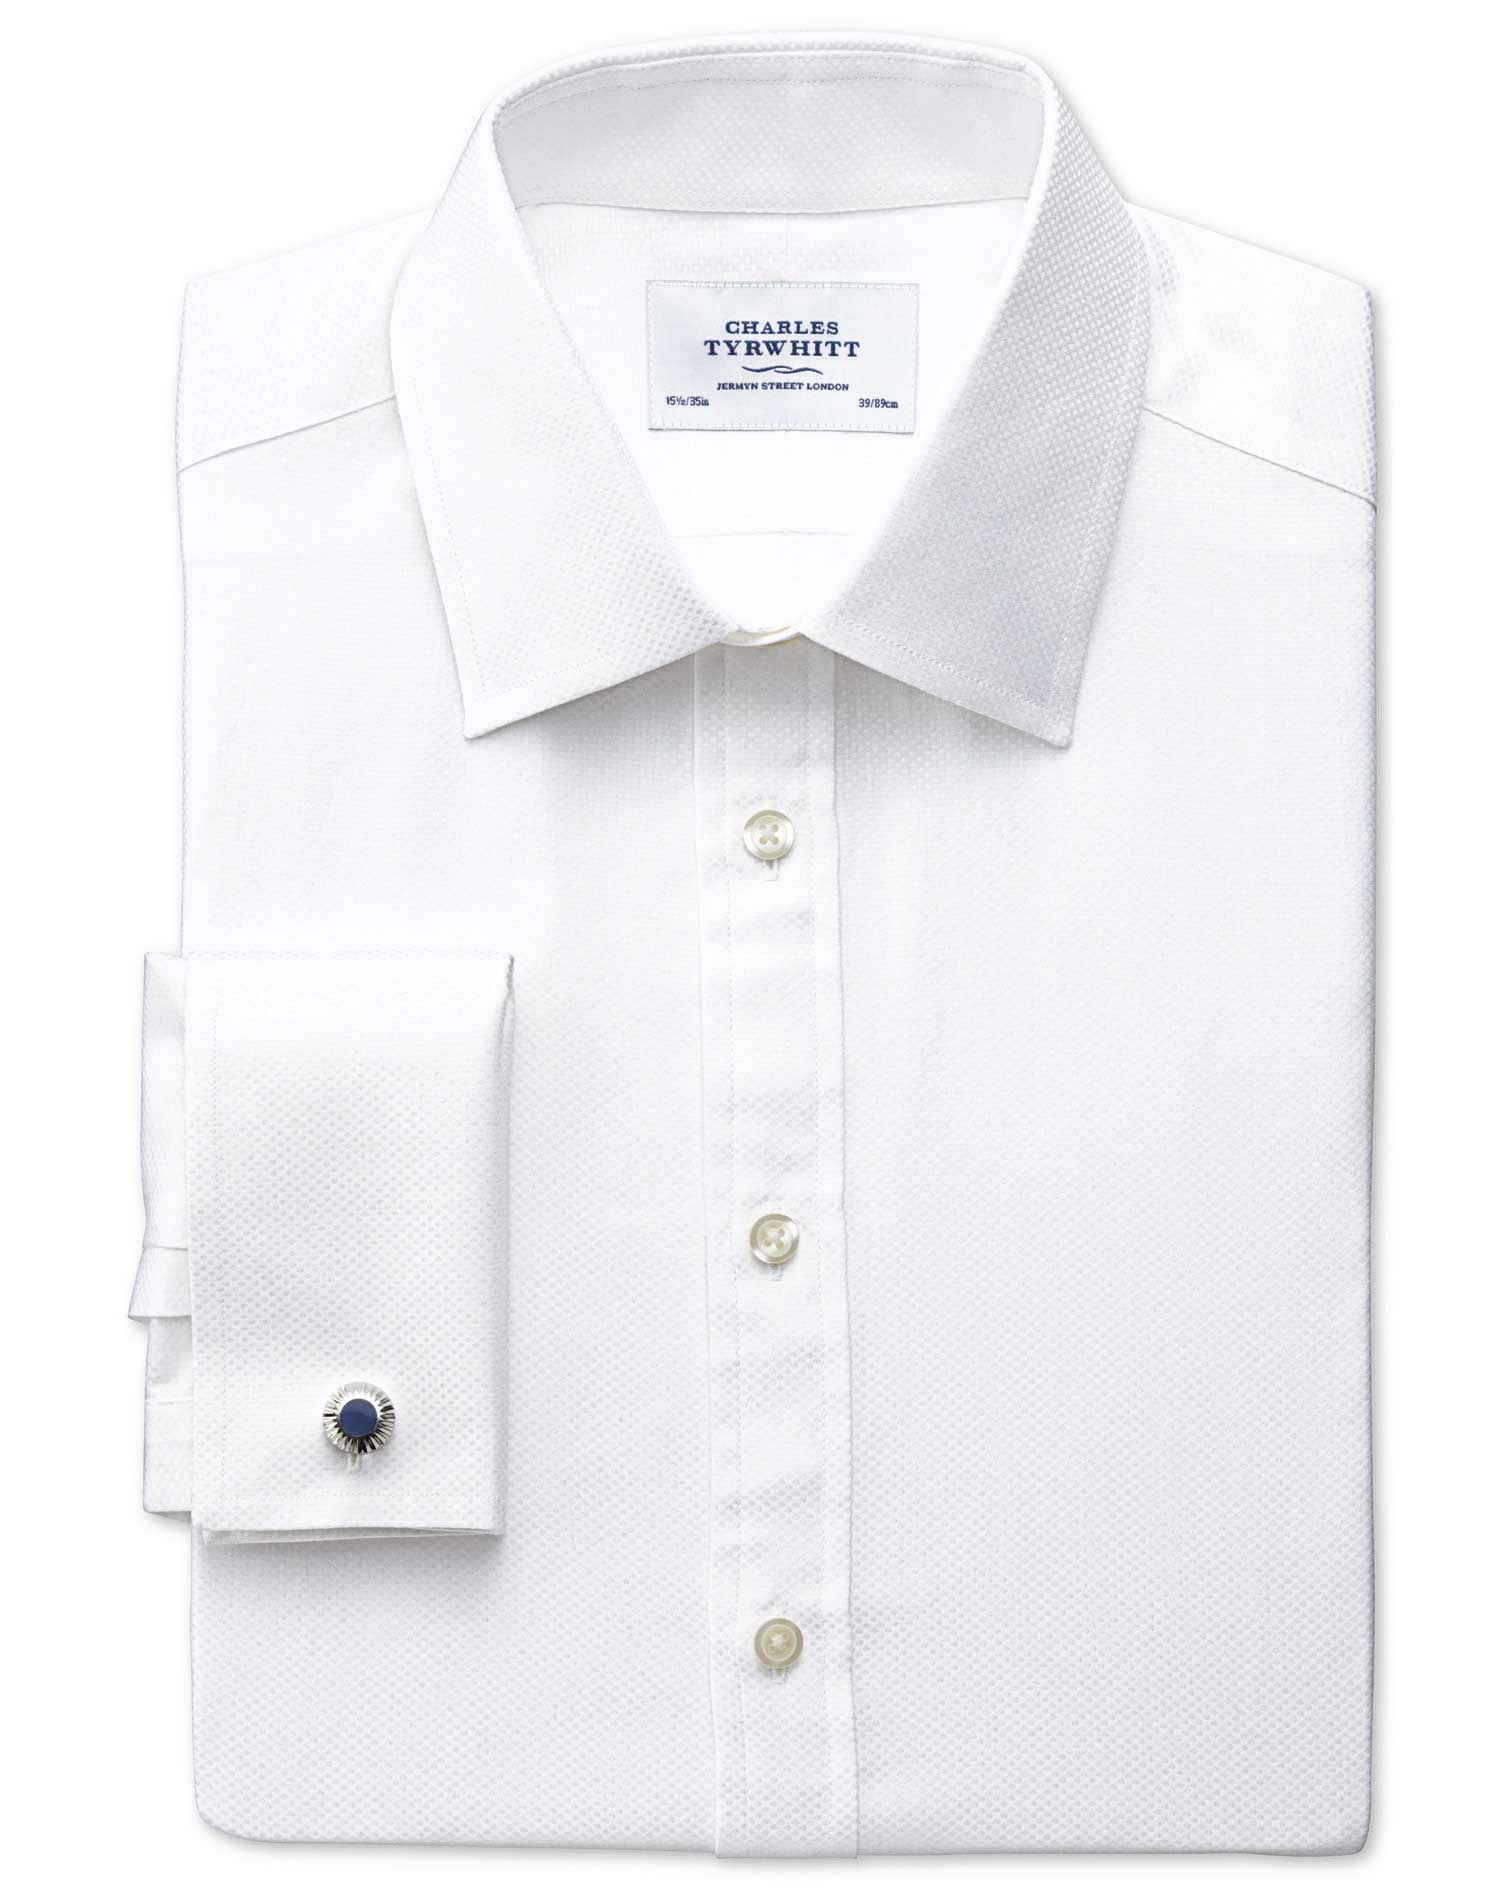 Classic Fit Pima Cotton Double-Faced White Formal Shirt Double Cuff Size 15/35 by Charles Tyrwhitt